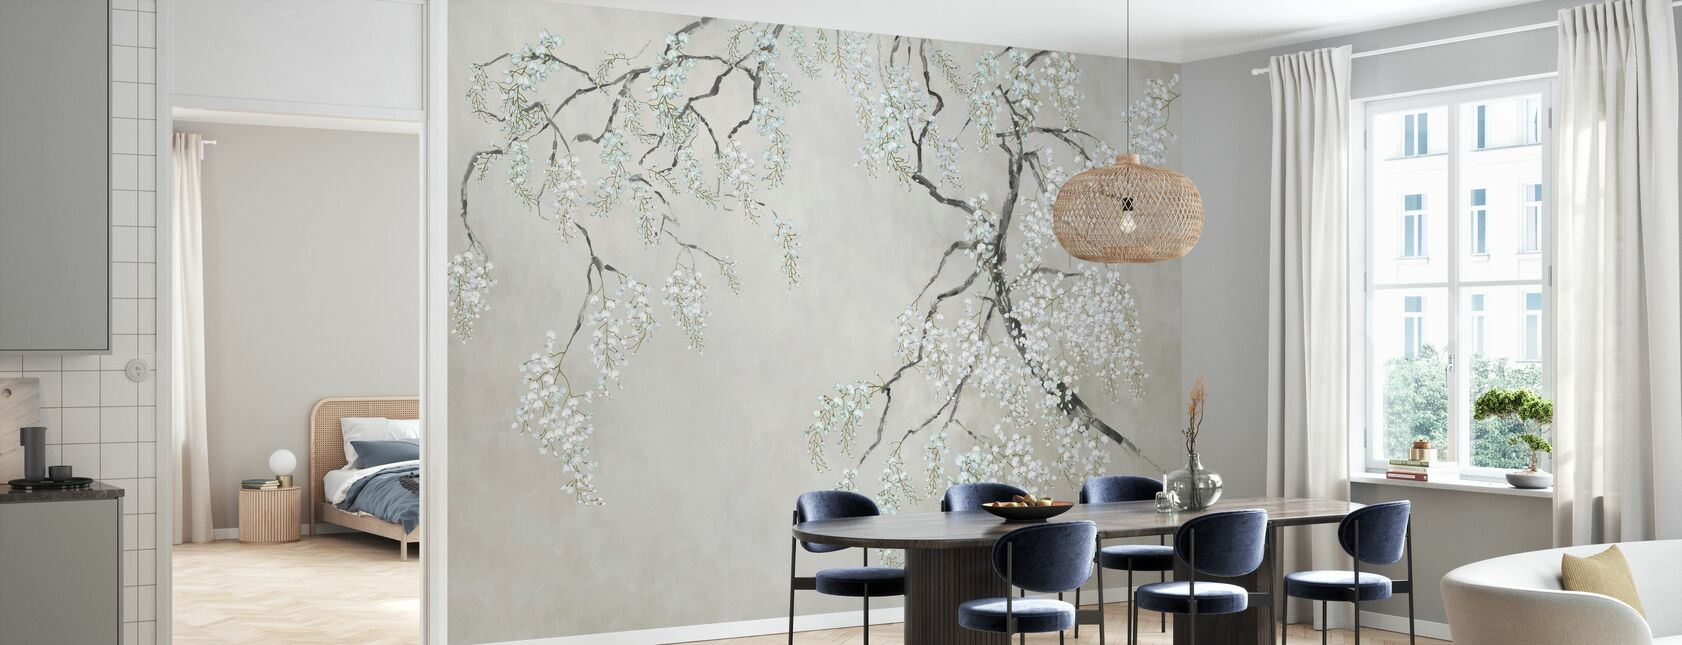 Blossom Wisteria - Wallpaper - Kitchen